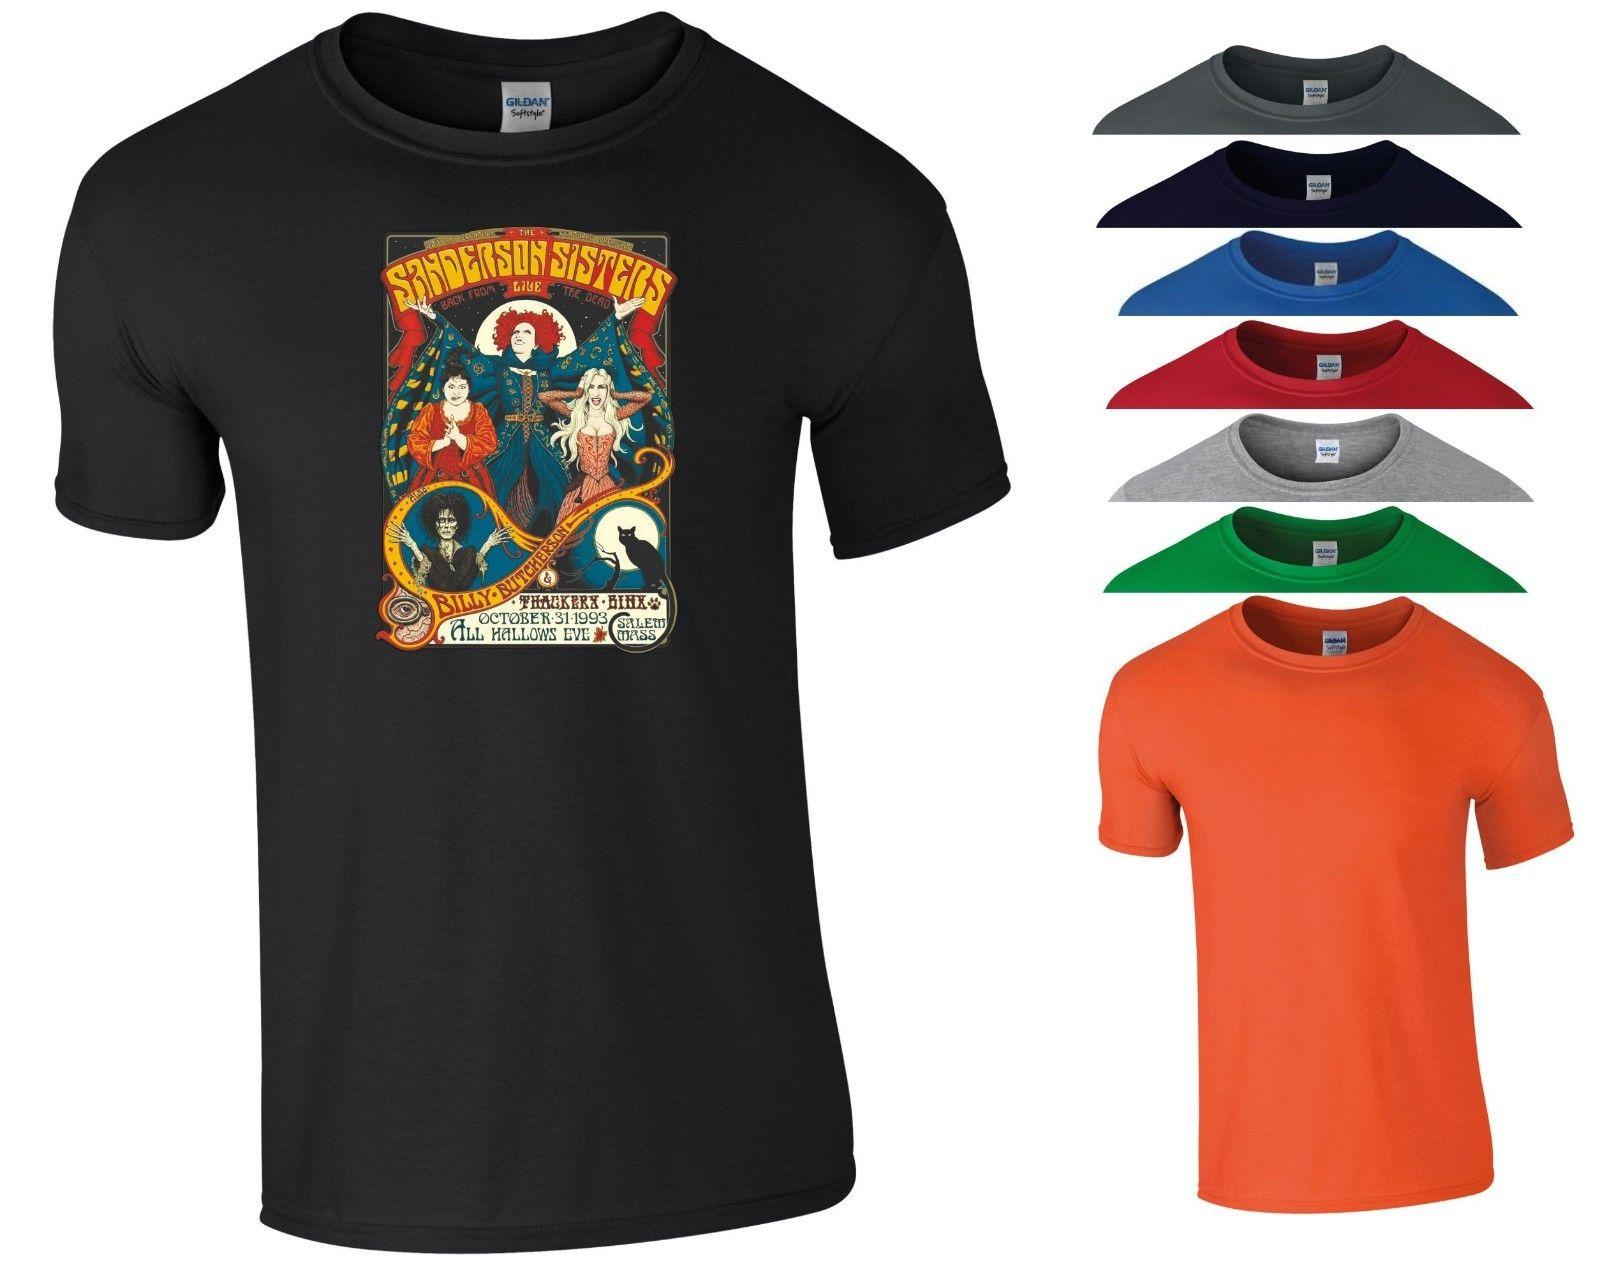 f84c8c64c Hocus Pocus Movie T Shirt Sanderson Sisters Horror Scary Funny Gift Men Tee  Top Funny Unisex Casual Tee Gift Design Your Own T Shirts Womens Shirt From  ...